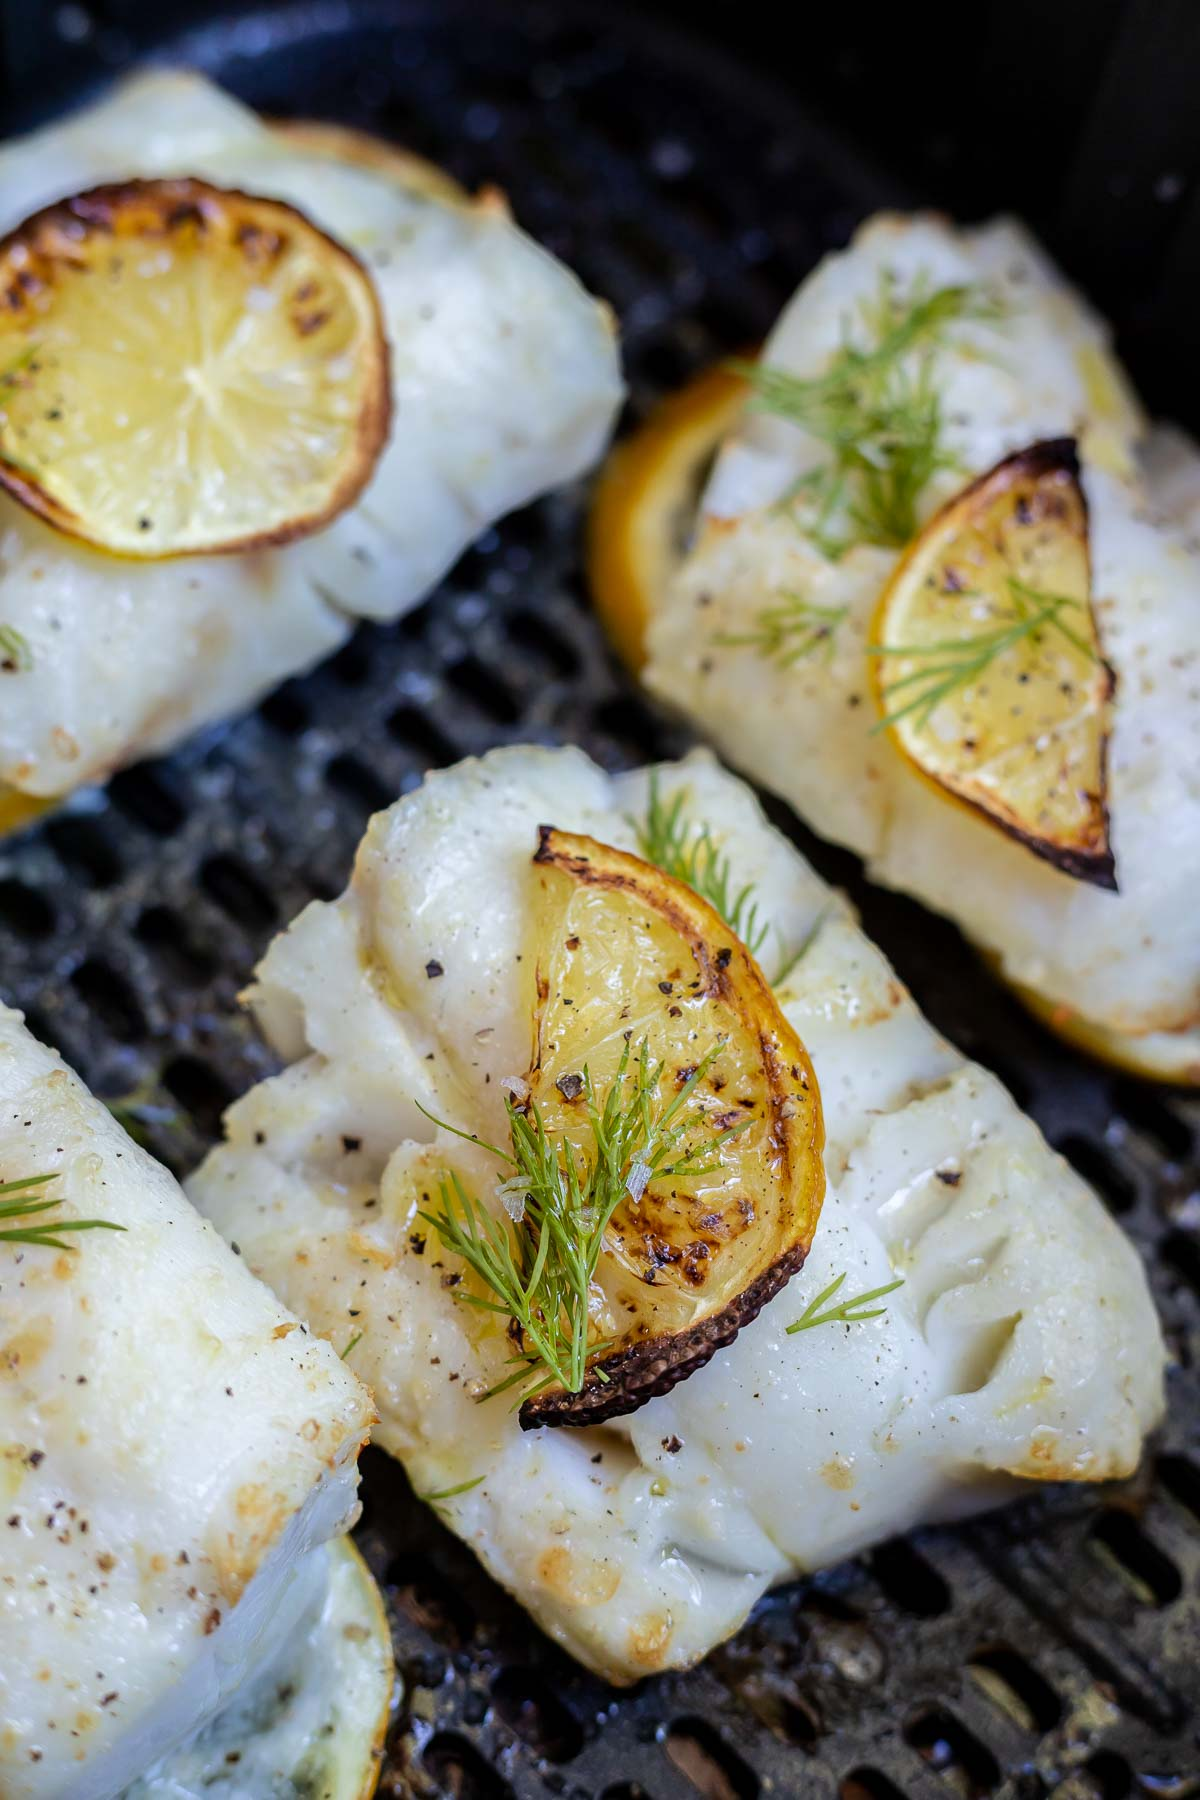 cod topped with lemon slice and dill in air fryer basket